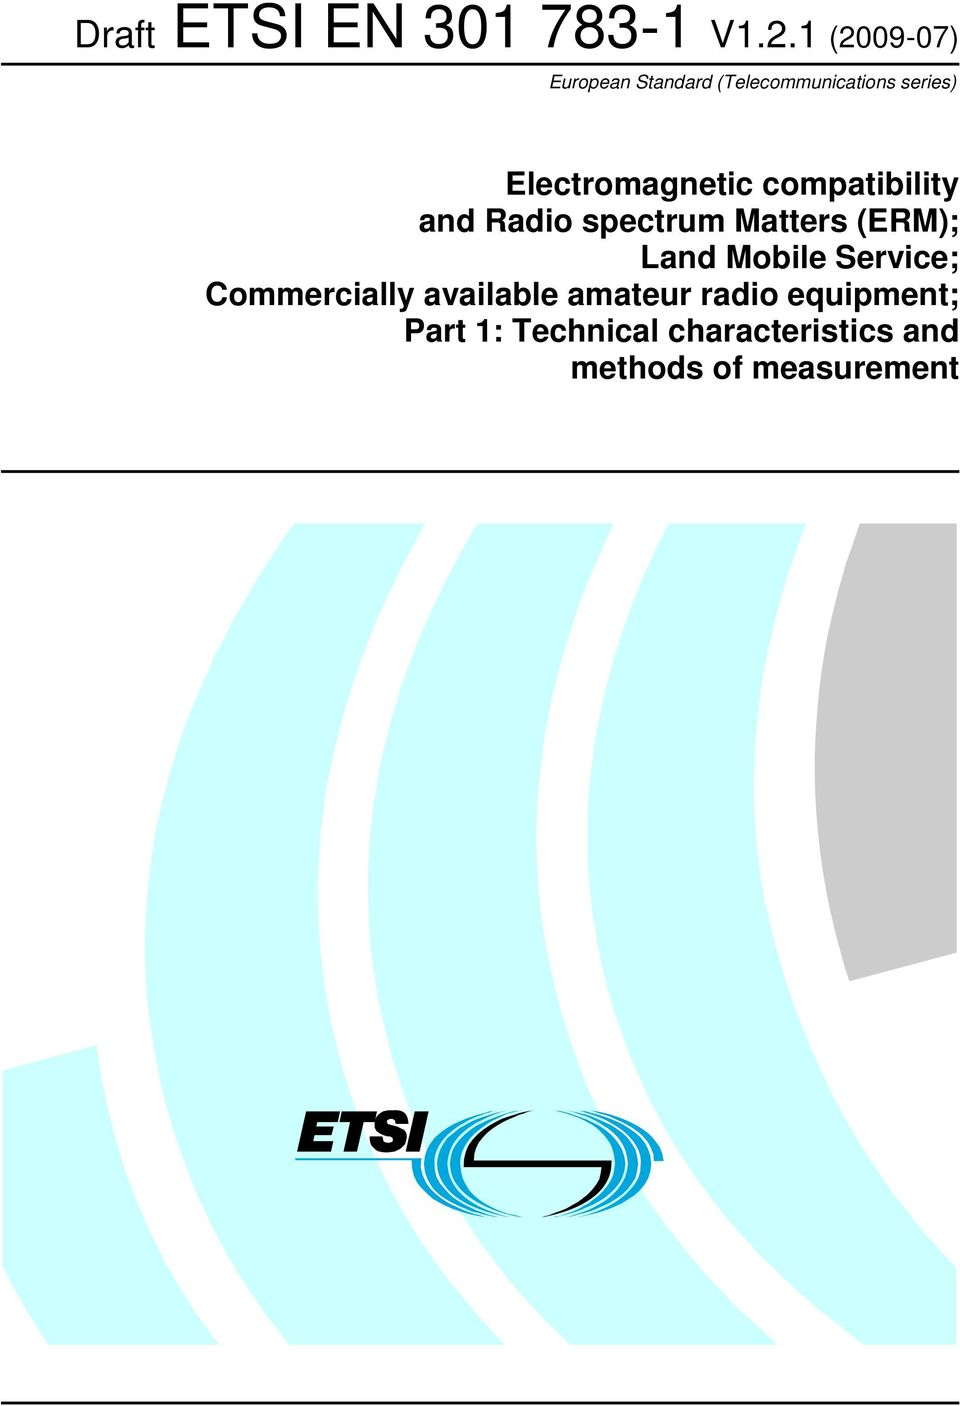 Electromagnetic compatibility and Radio spectrum Matters (ERM); Land